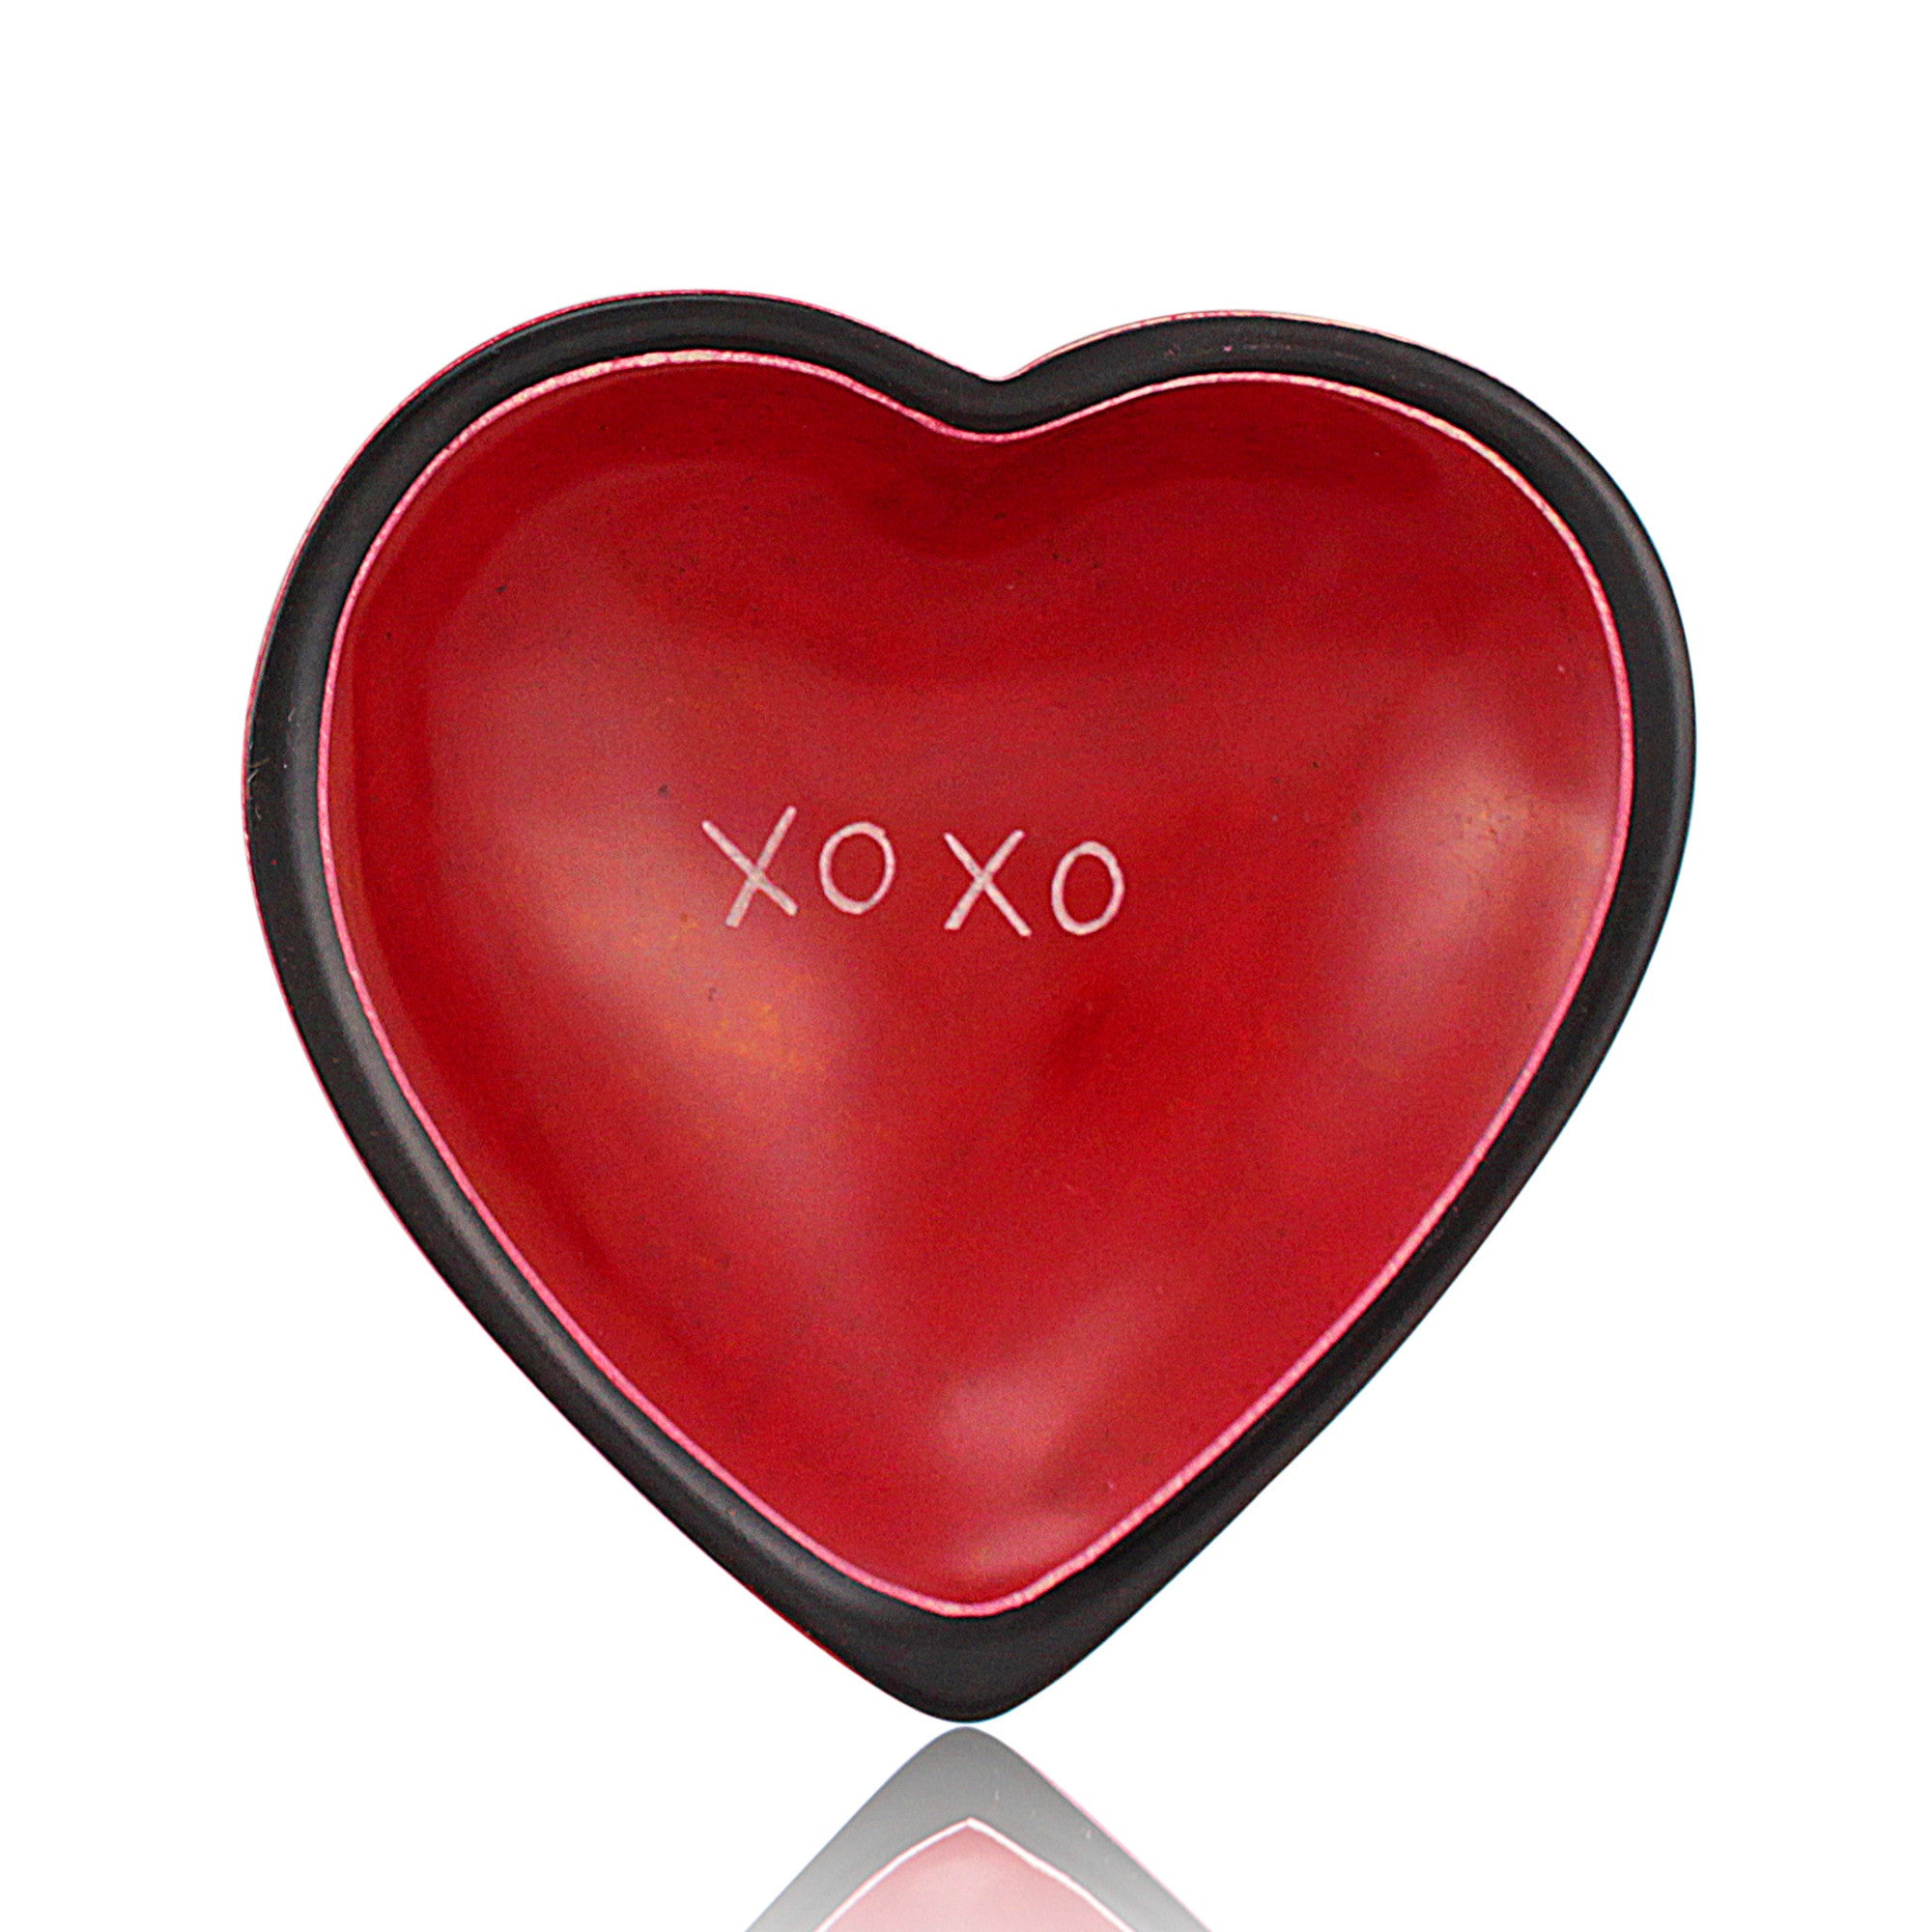 XOXO Kenyan Heart Shaped Soapstone Dish by Venture Imports